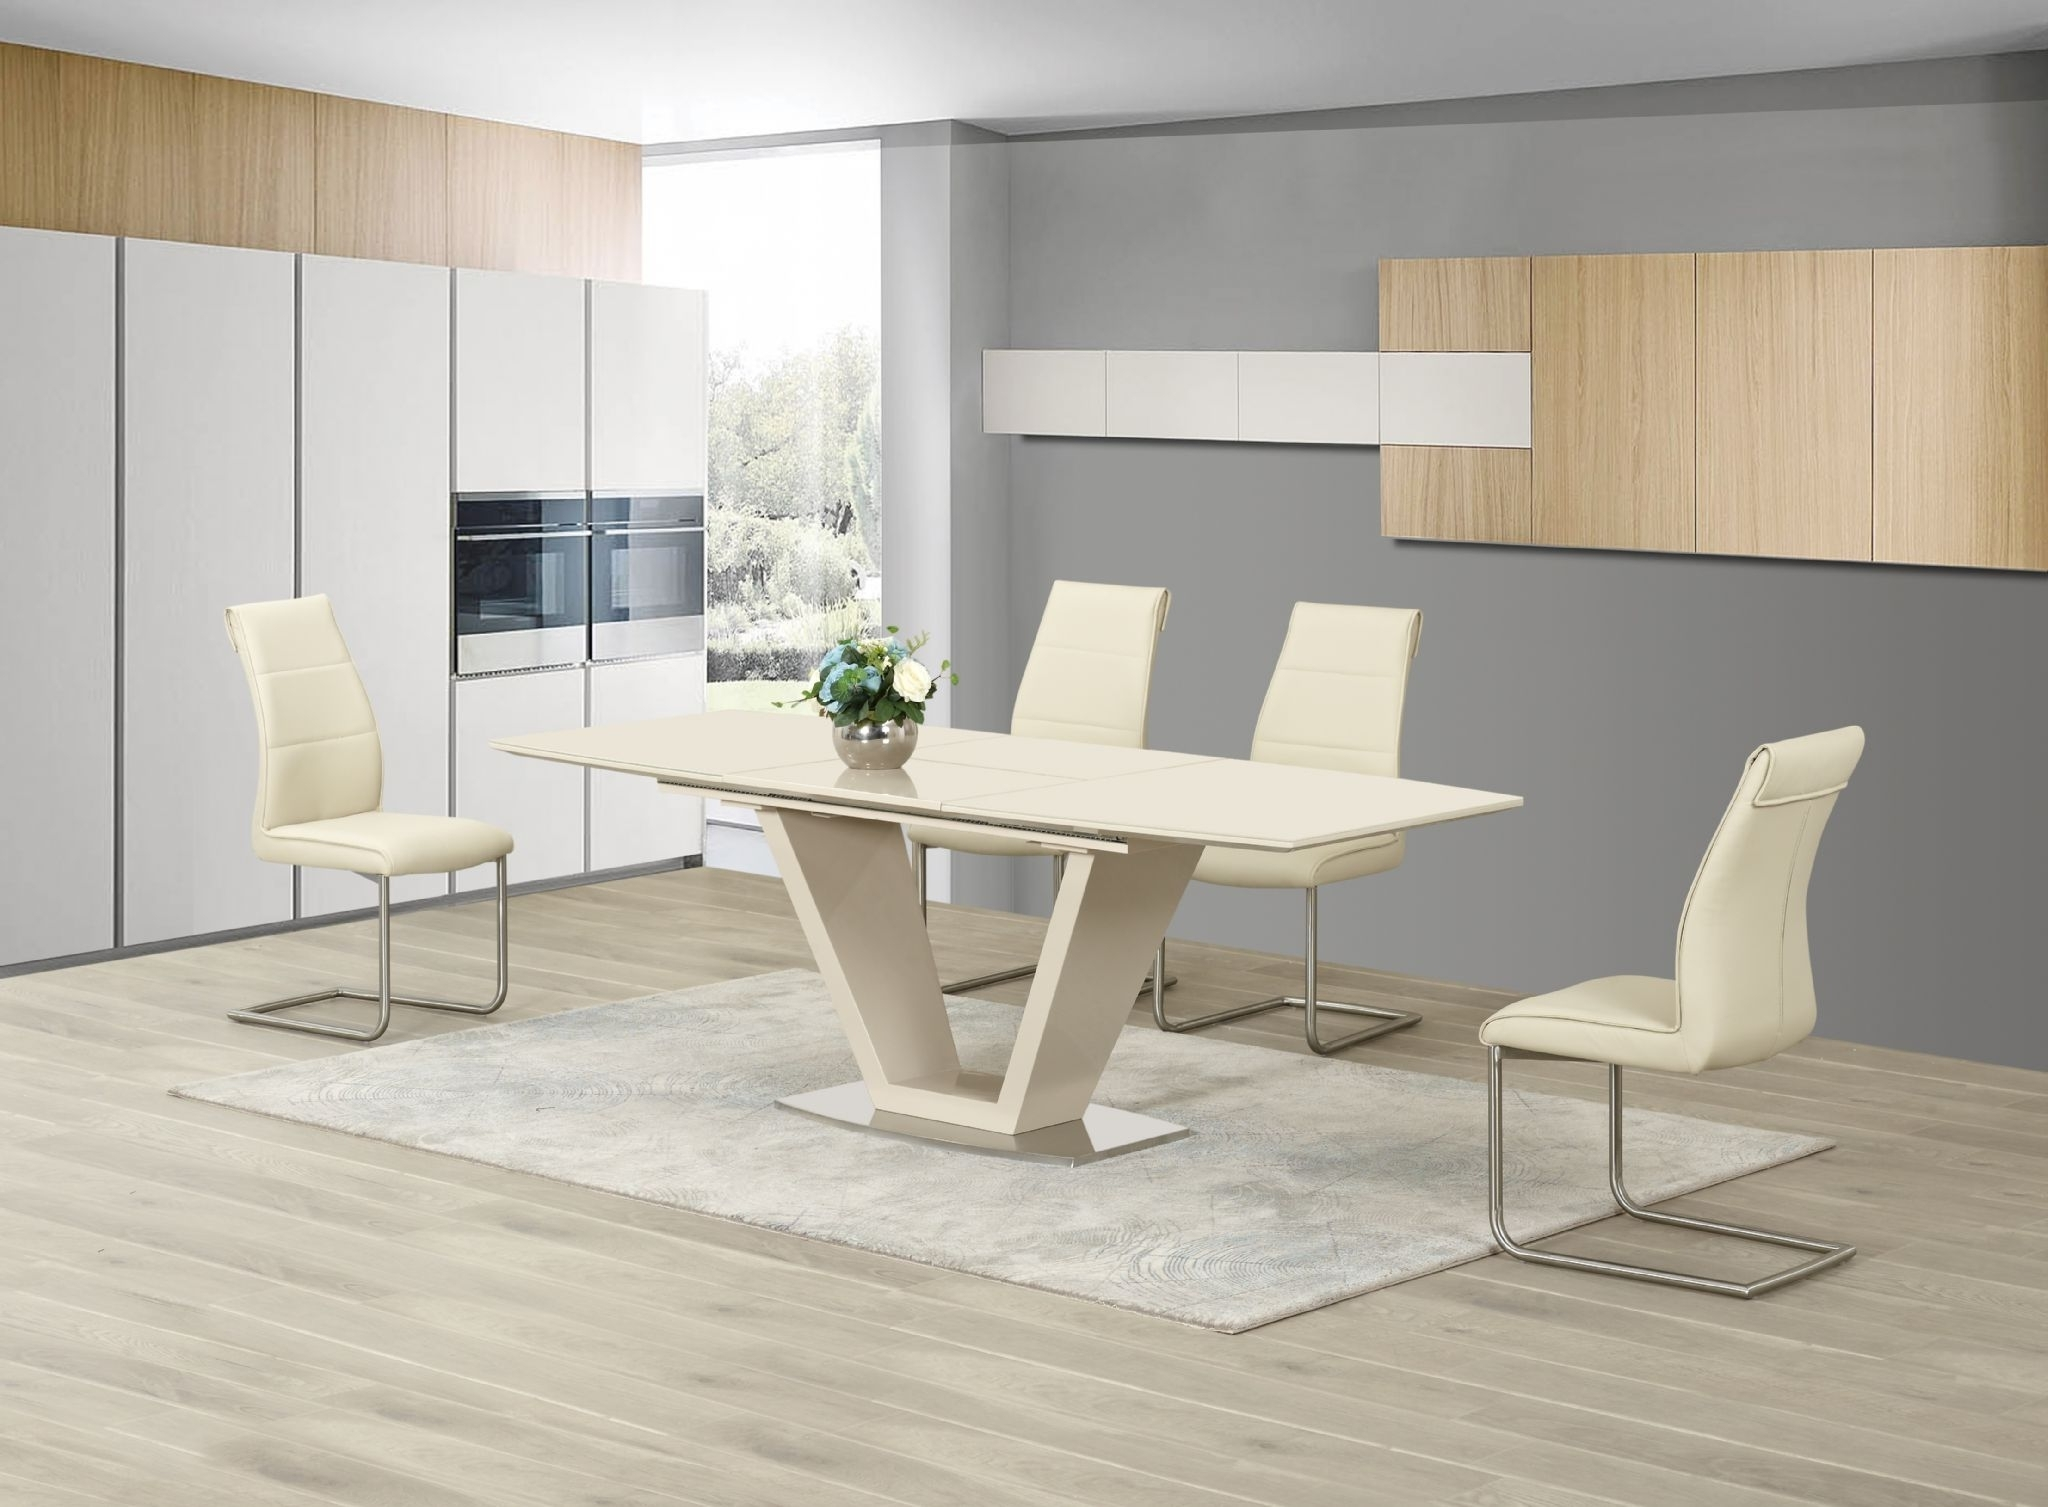 Most Recently Released Ga Loriga Cream Gloss Glass Designer Dining Table Extending 160 220 Regarding White Glass Dining Tables And Chairs (View 11 of 25)